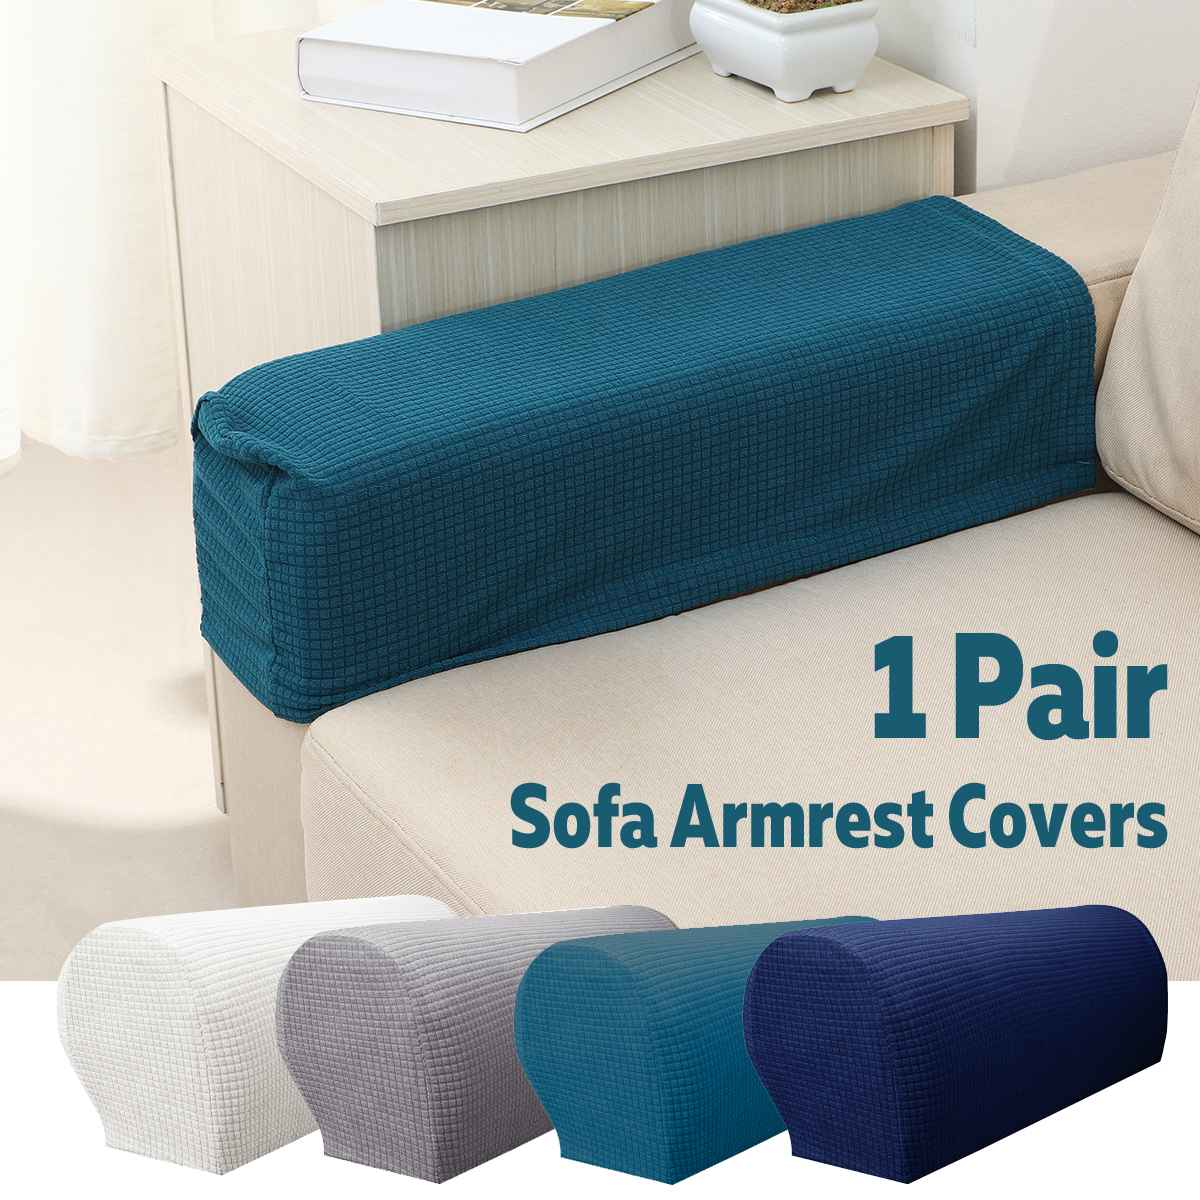 1 Pair Sofa Armrest Covers Waterproof Stretch Fabric Arm Protectors Chair Covers Mat Home Decor For Couches Armchairs Slipcover